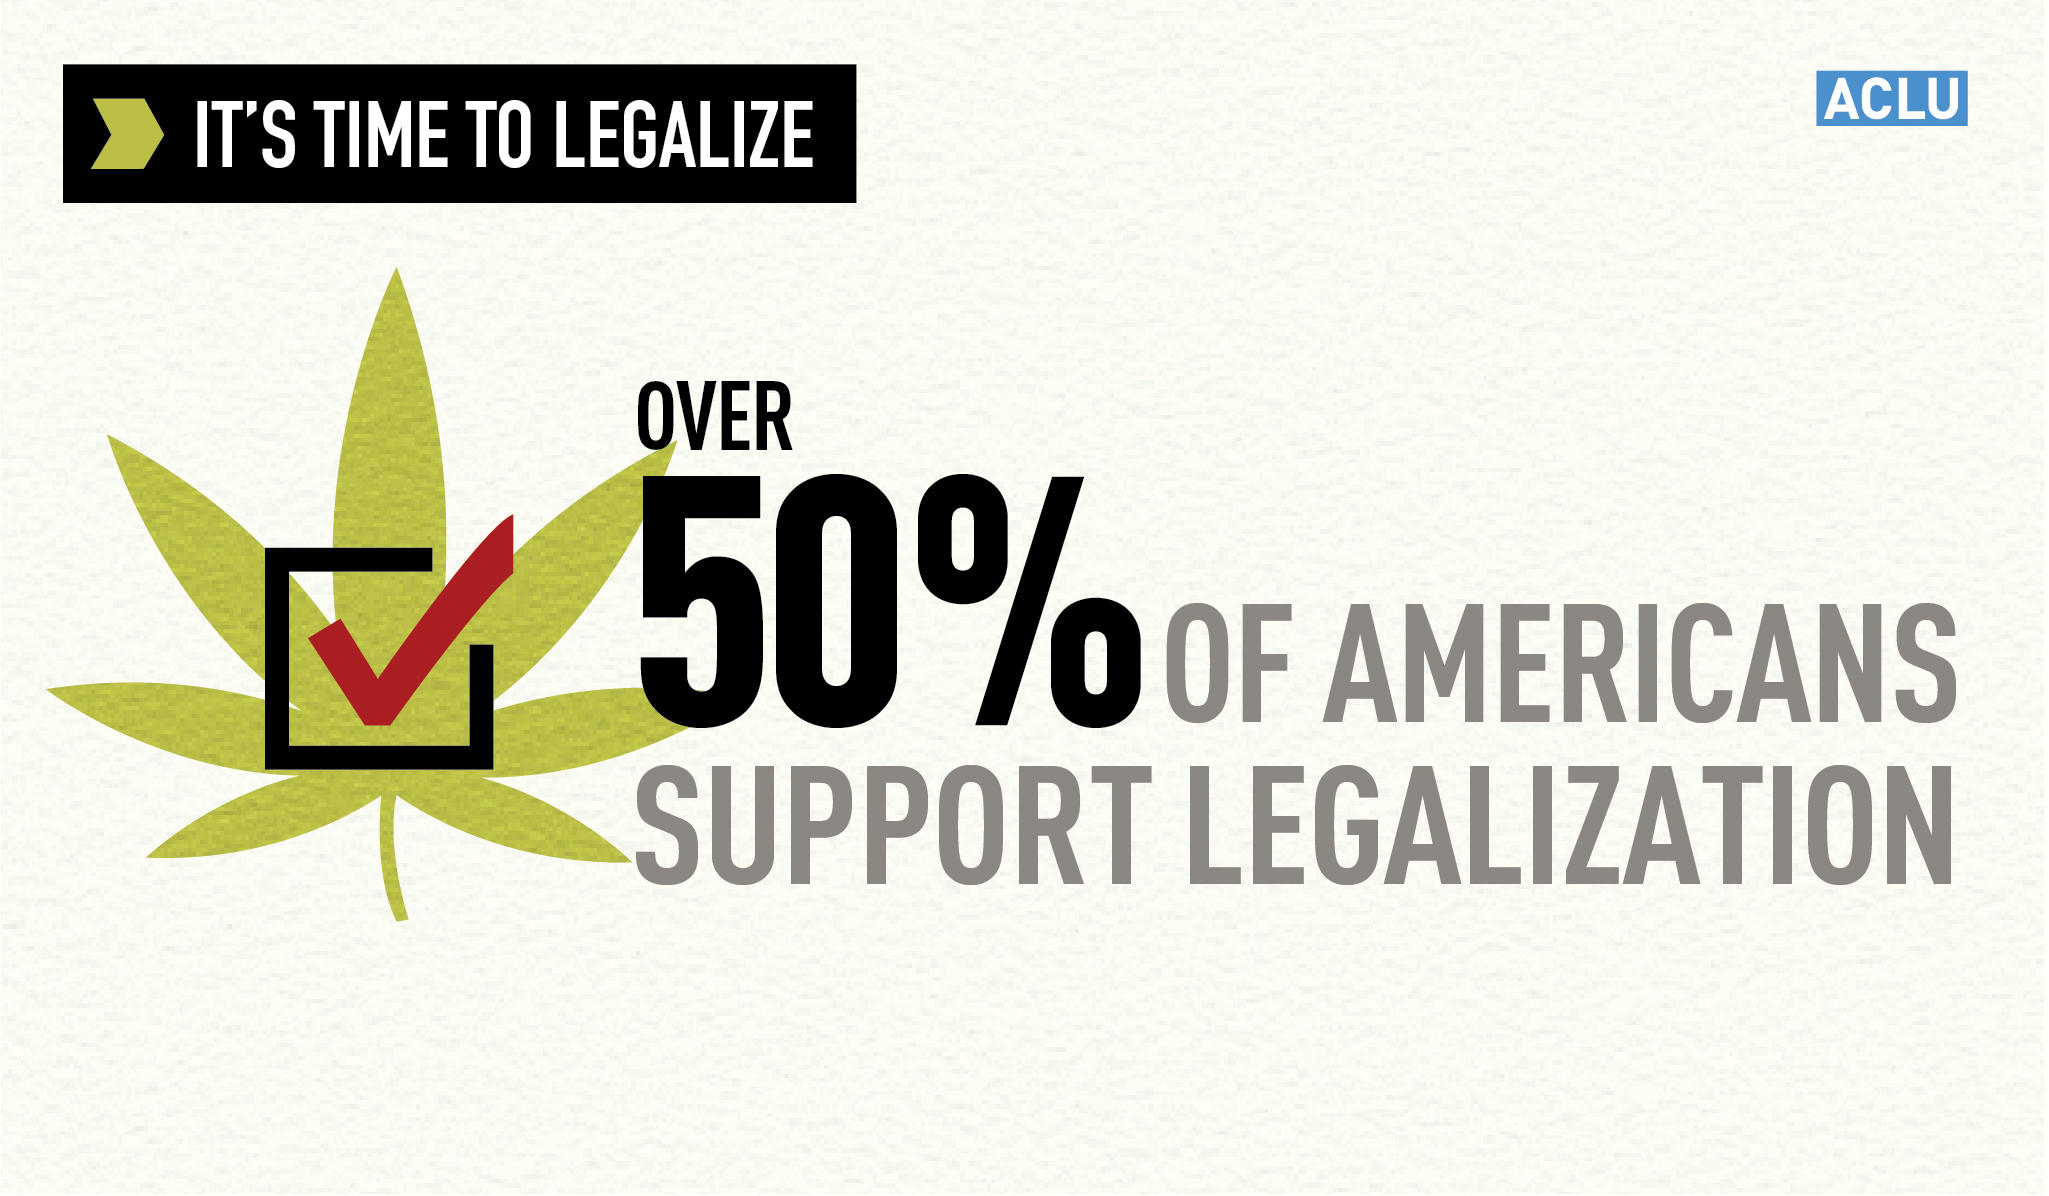 Half of Americans Support Marijuana Legalization